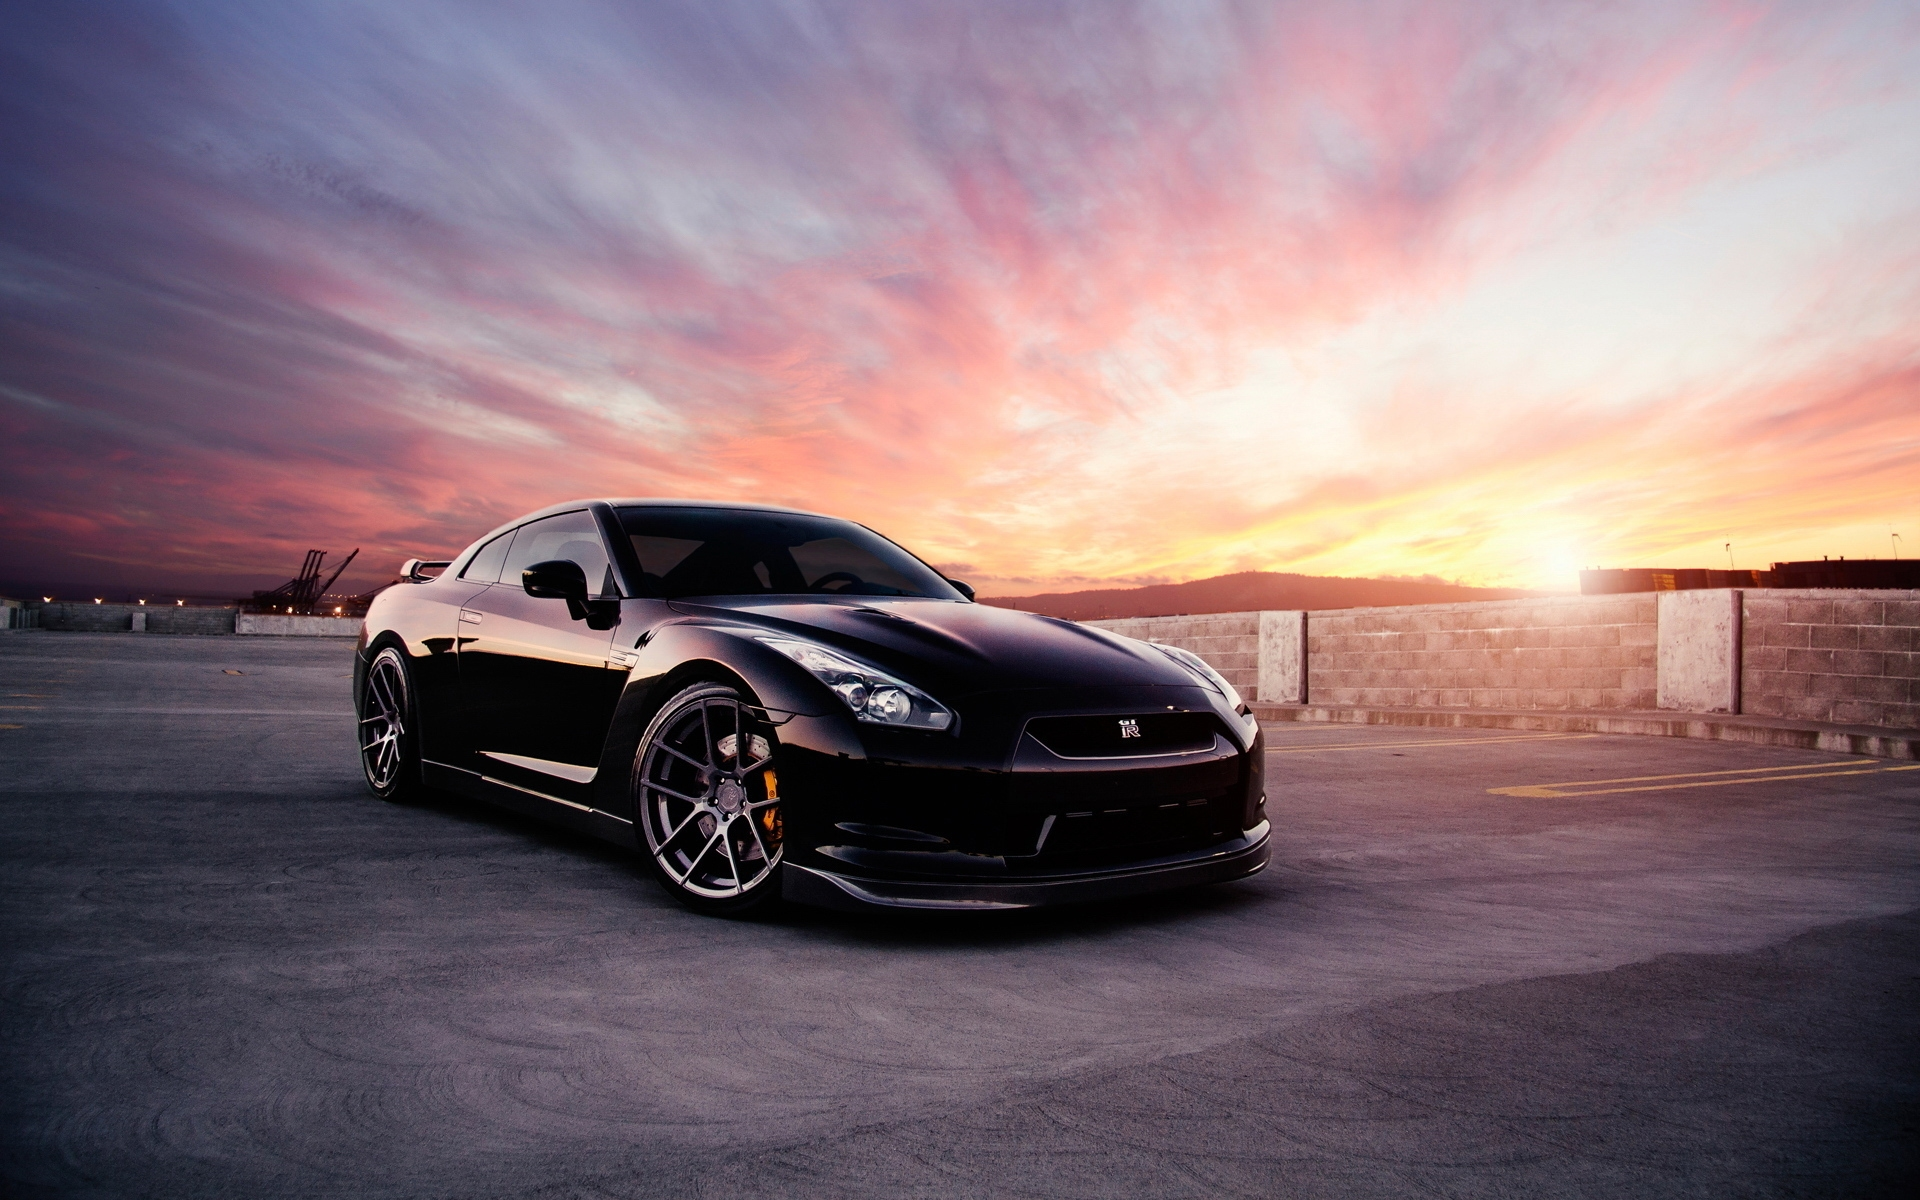 Nissan Gt R Hd Wallpaper Wallpapersafari